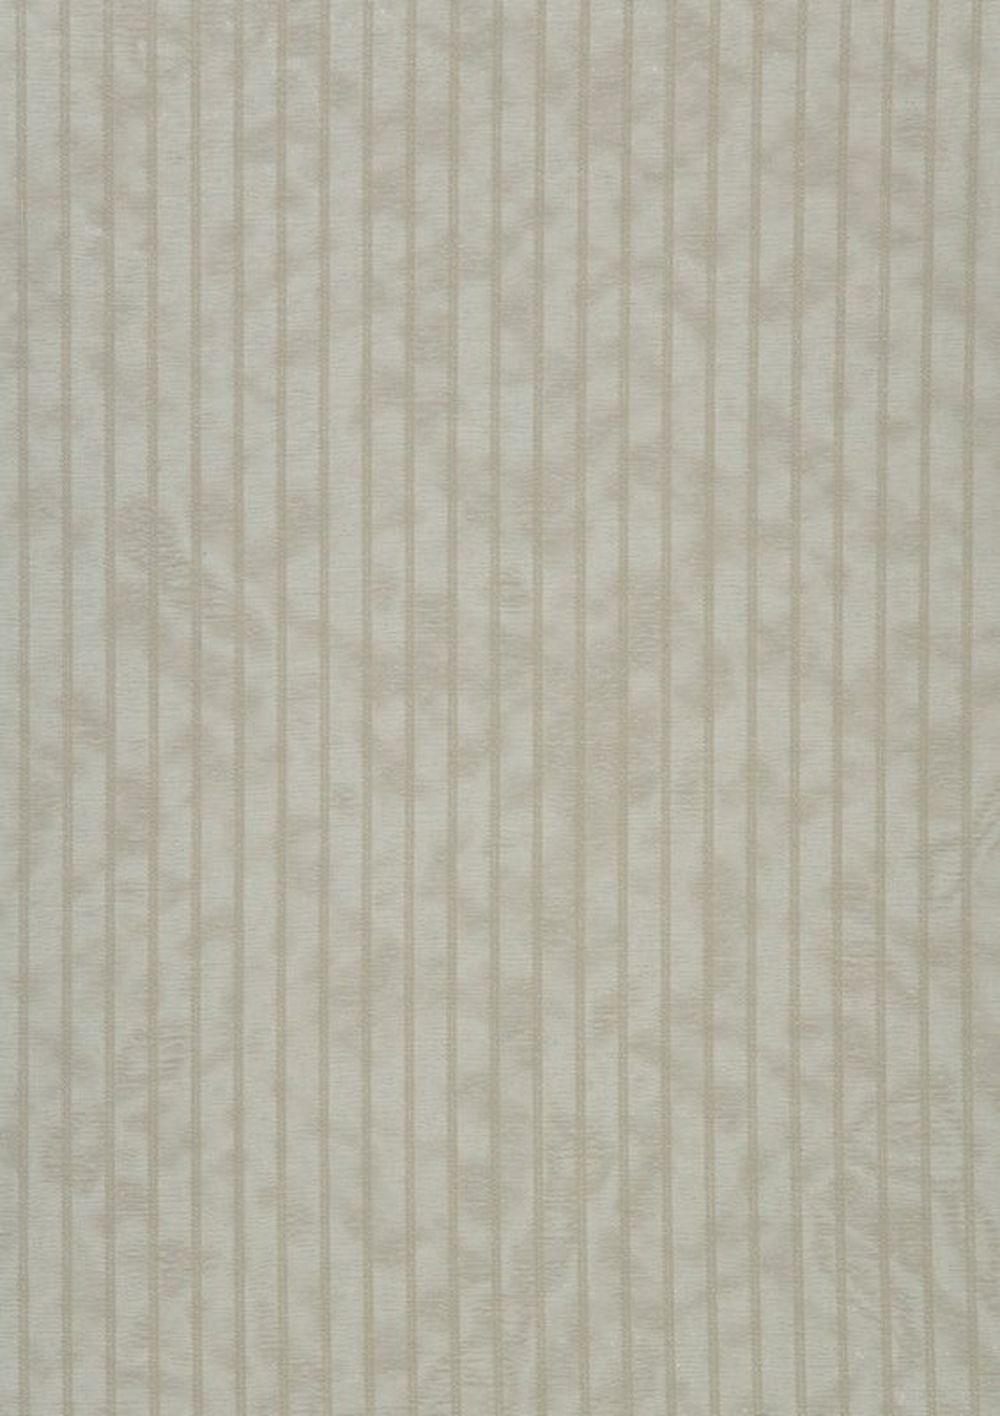 Photo of the fabric Glassy FR-One Flax swatch by FR-One. Use for Sheer Curtains. Style of Plain, Sheer